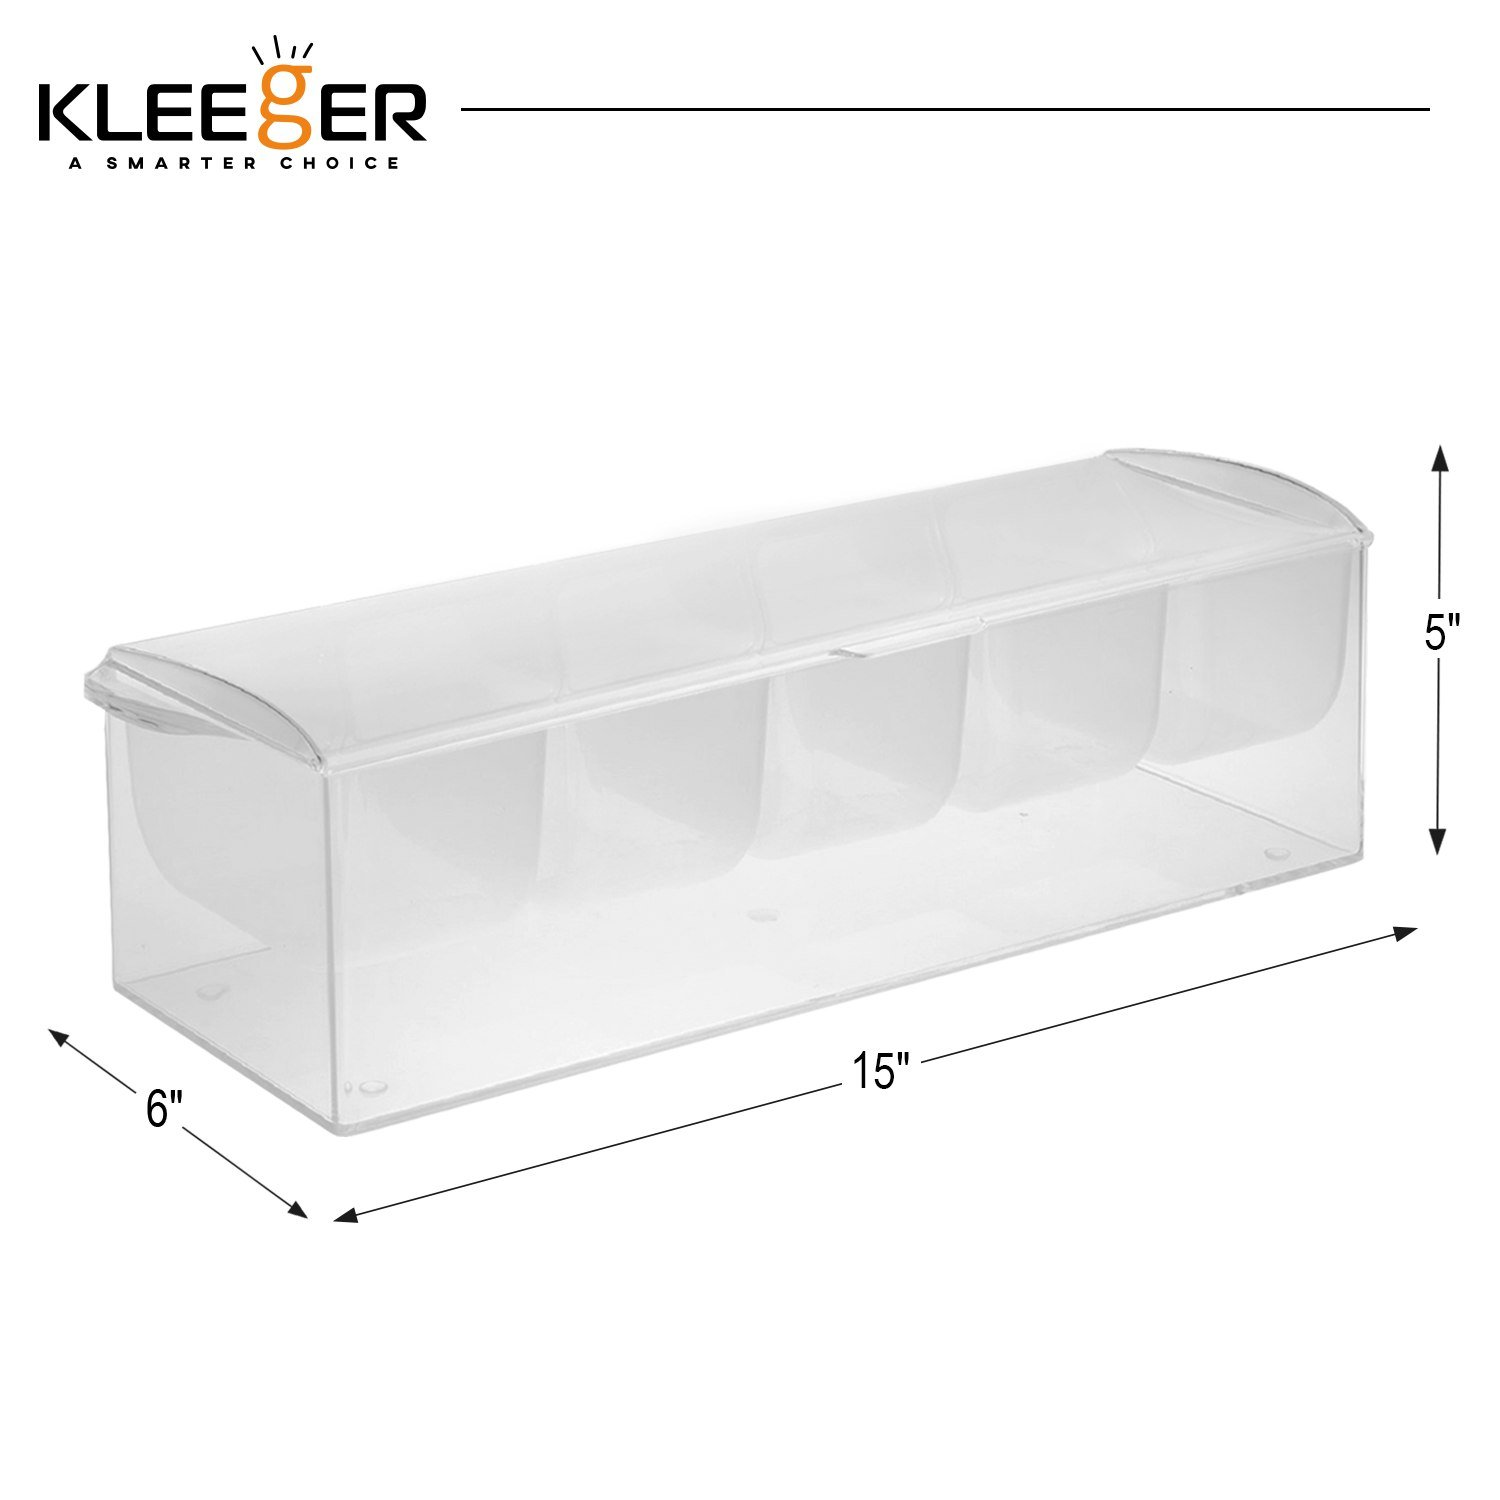 Kleeger Chilled Condiment Server With Lid: 5 Removable Compartments, Bottom Fills With Ice by KLEEGER (Image #4)